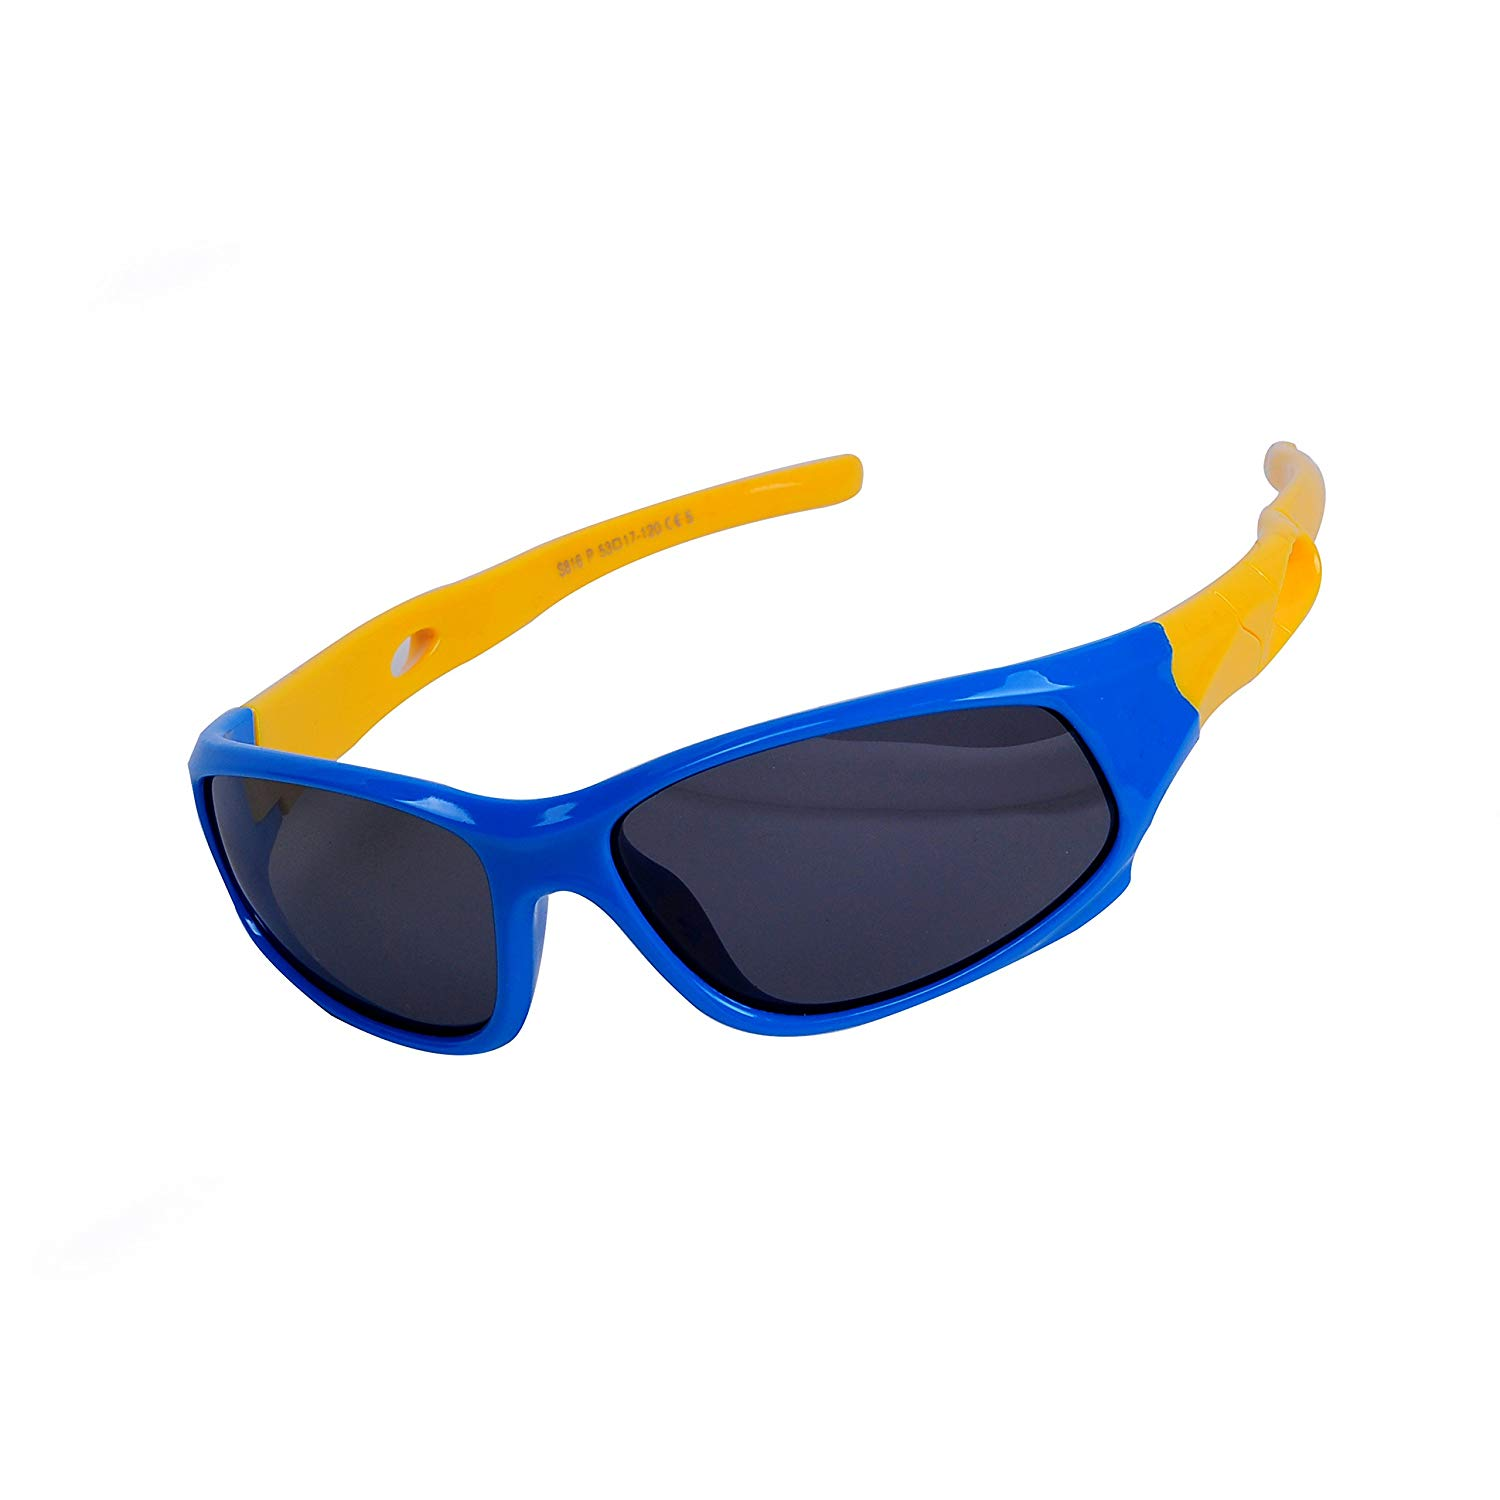 c2e99b23818 Get Quotations · Kids Sport Sunglasses for Boys Girls (3-12 years) Polarized  UV Protection +